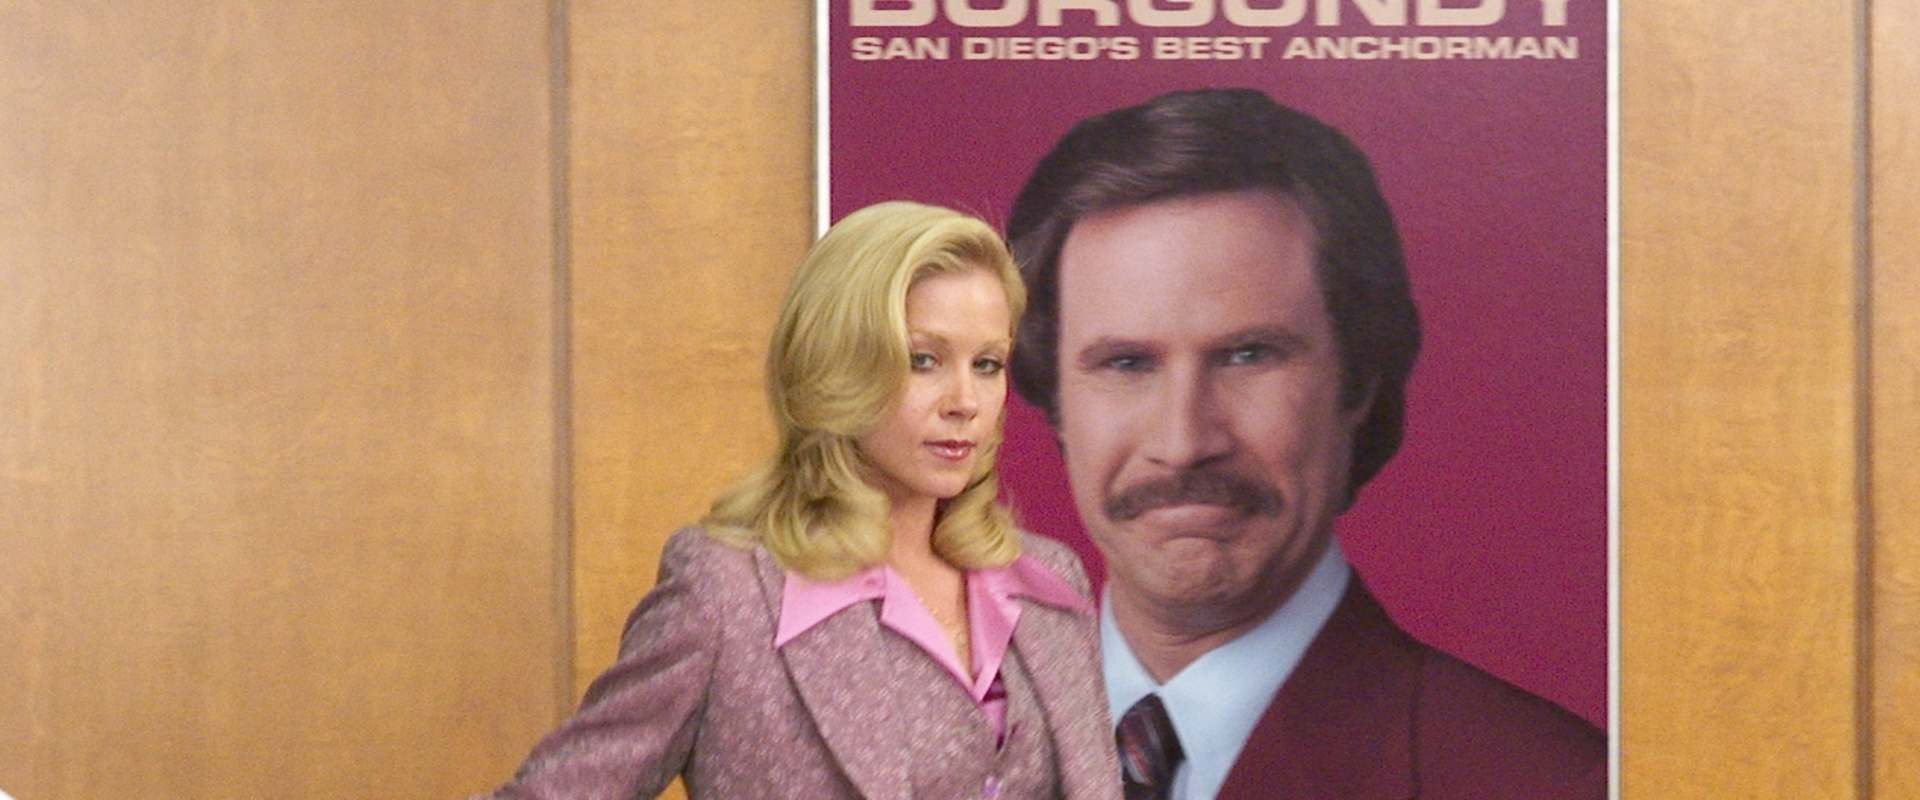 Anchorman: The Legend of Ron Burgundy background 2